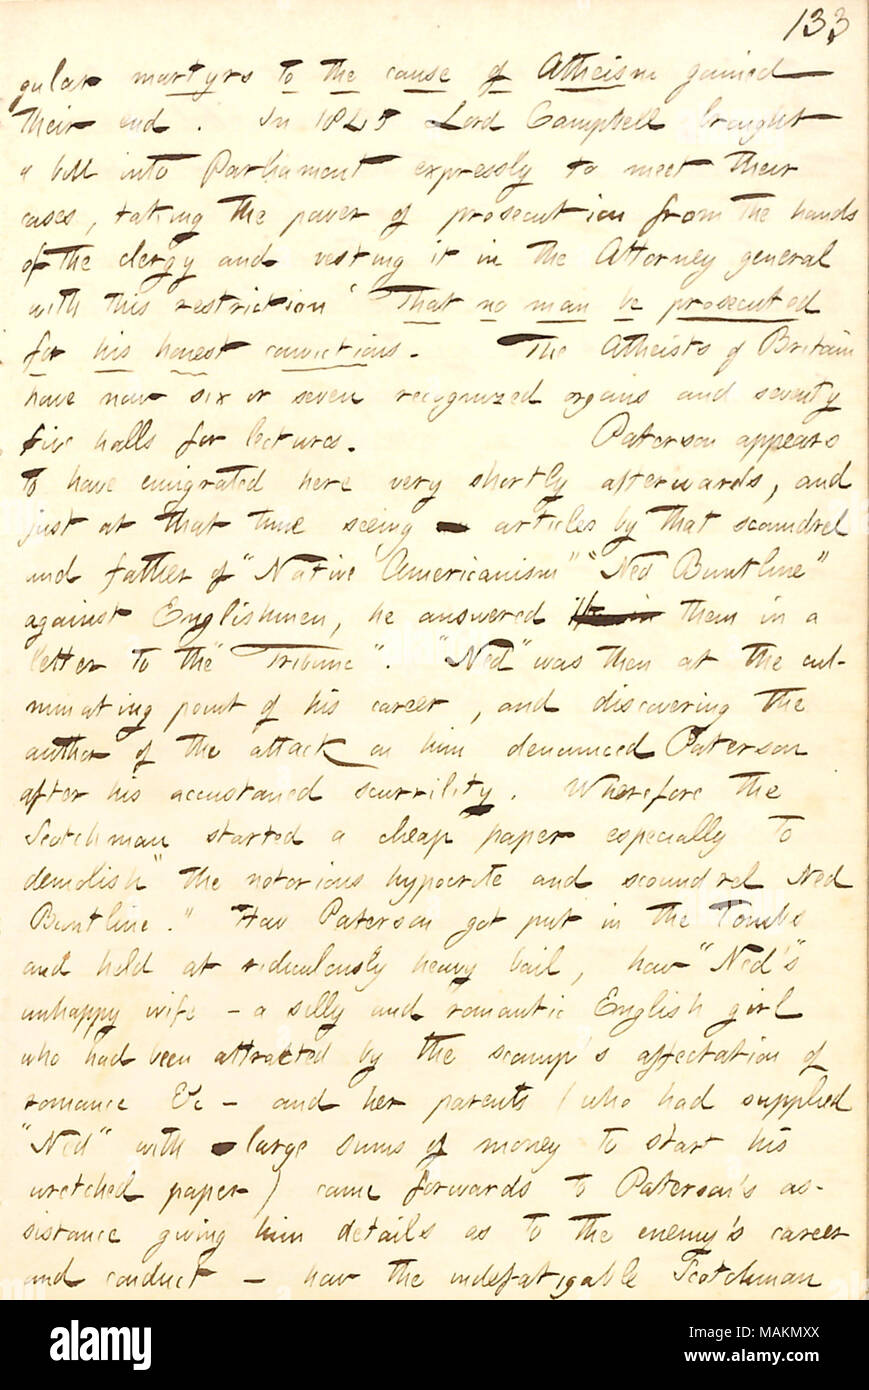 Regarding Thomas Paterson, who works with him on the European.  Transcription: [sin]gular martyrs to the cause of Atheism gained their end. In 1845 Lord Campbell brought a bill into Parliament expressly to meet their cases, taking the power of prosecution from the hands of the clergy and vesting it in the Attorney general with this restriction ?ǣThat no man be prosecuted for his honest convictions. The Atheists of Britain have now six or seven recognized organs and seventy five halls for lectures. [Thomas] Paterson appears to have emigrated here very shortly afterwards, and just at that time s - Stock Image